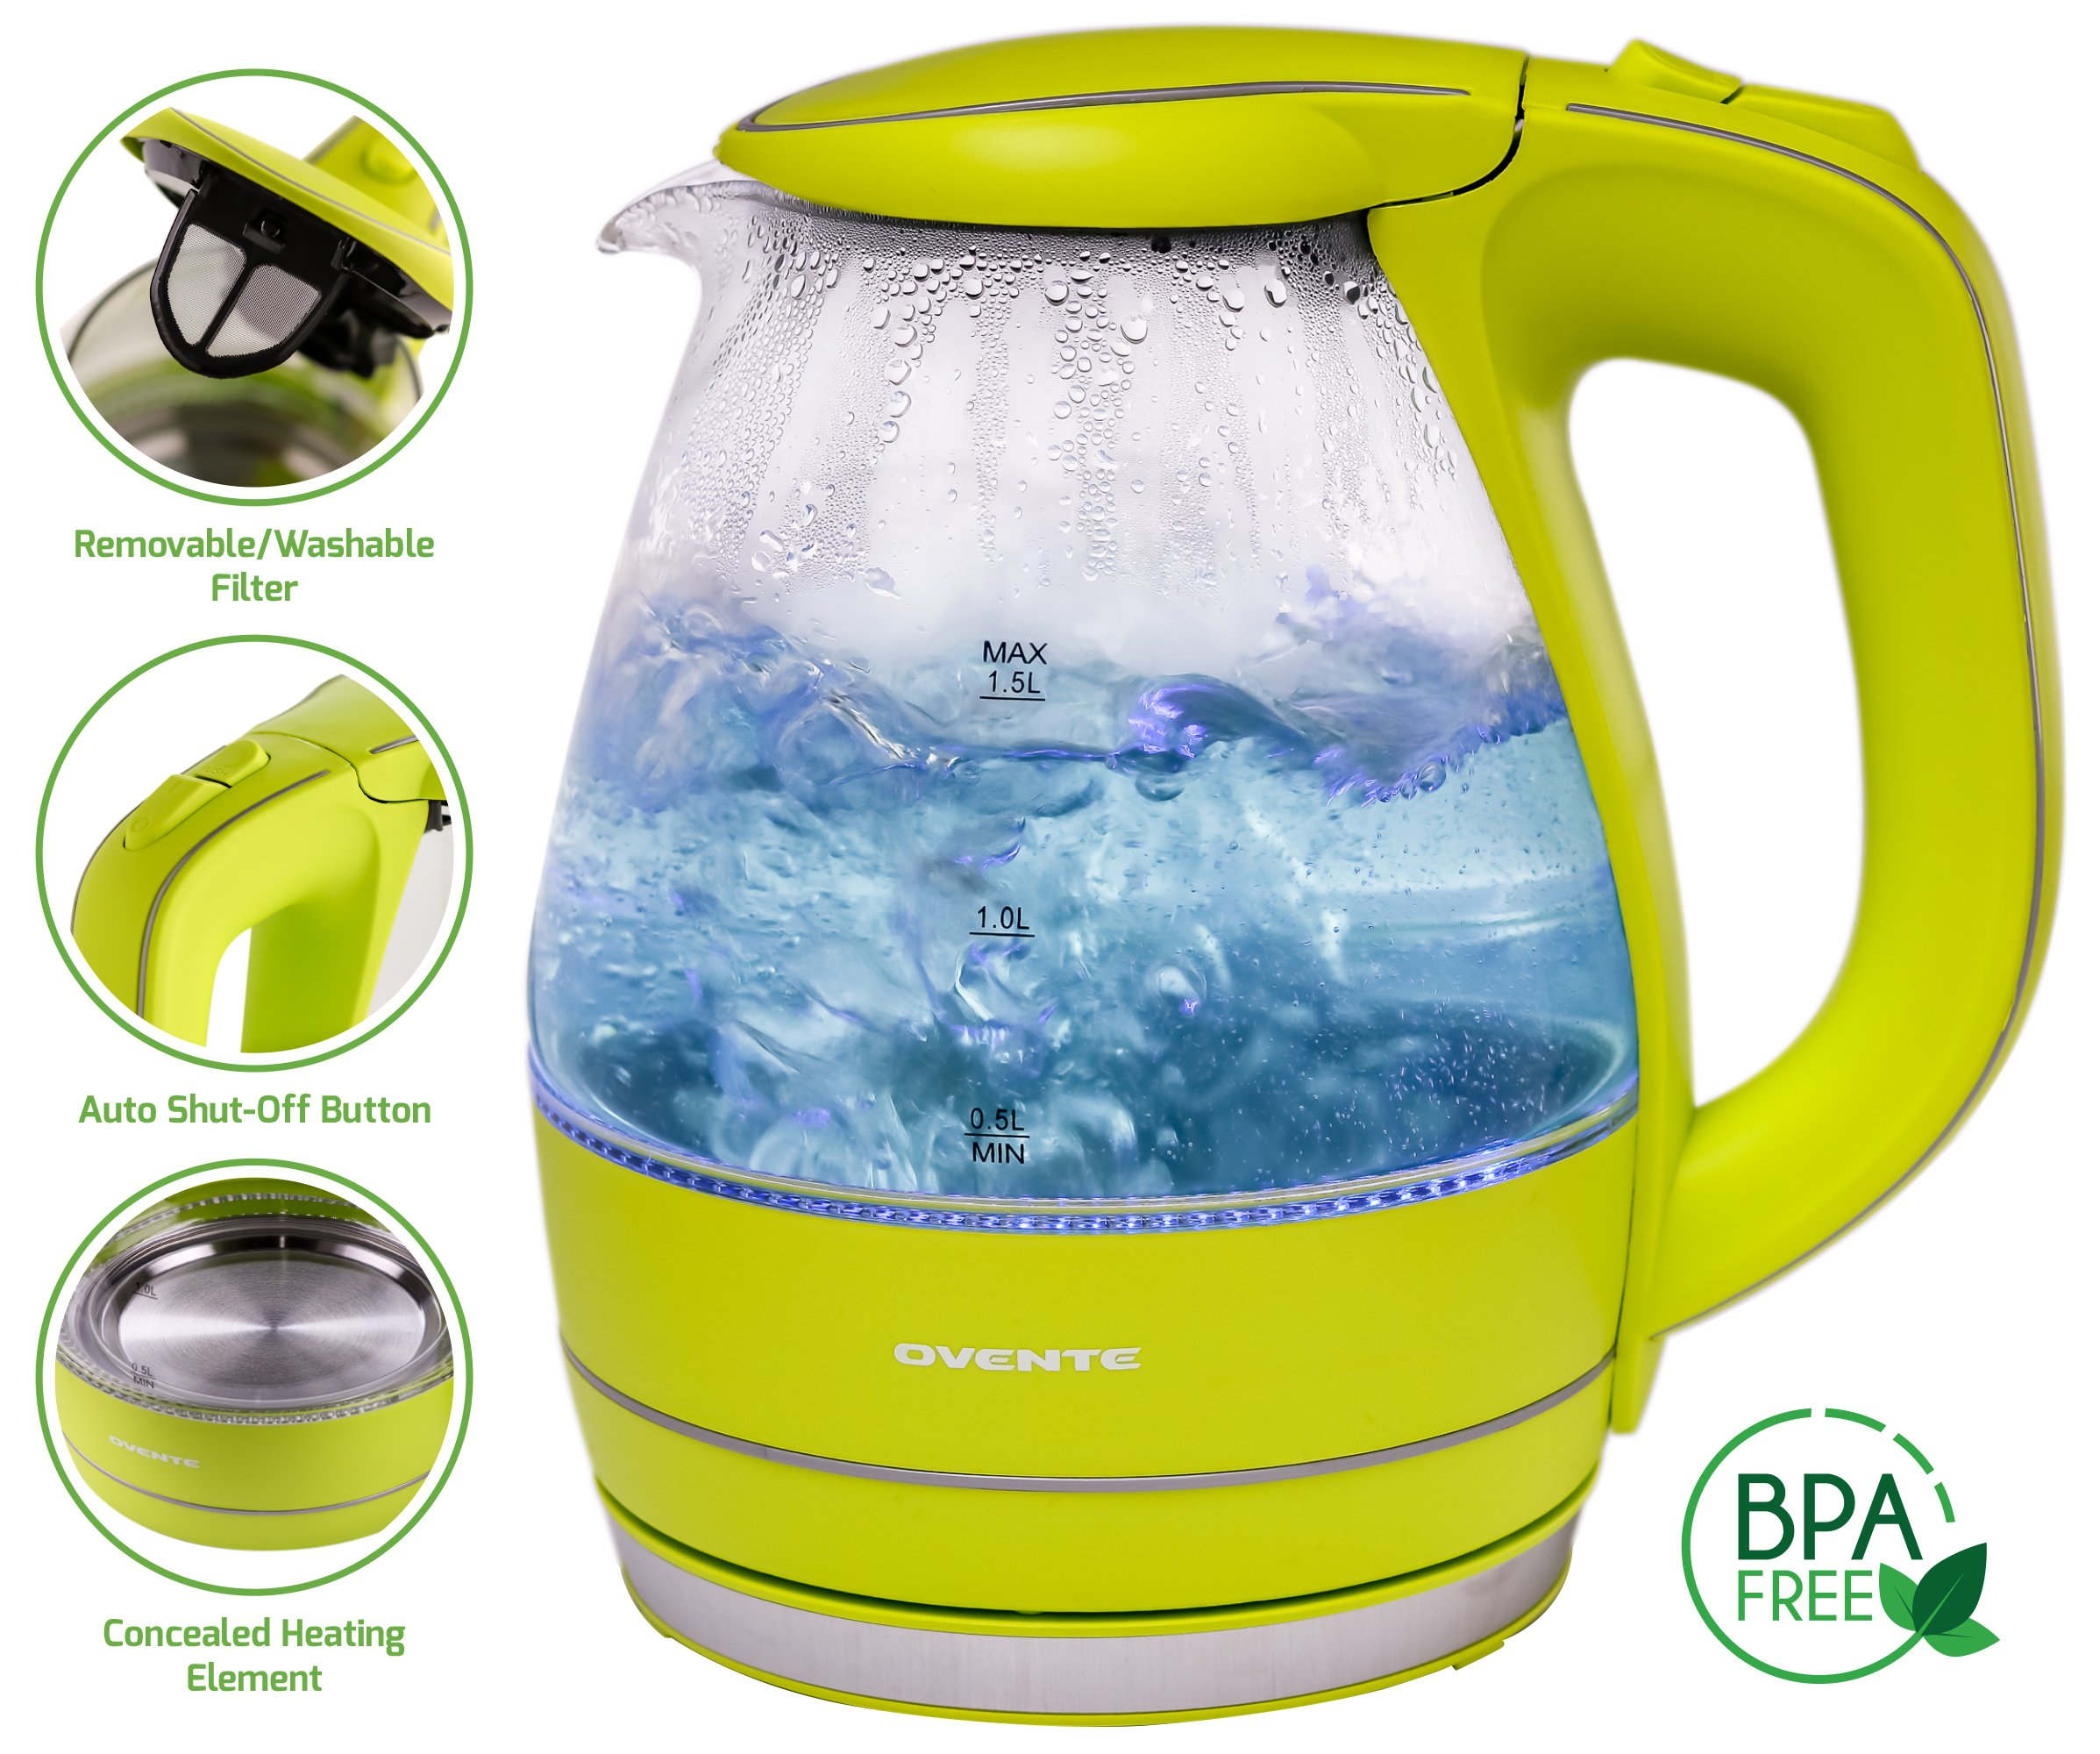 Ovente 1.5L BPA-Free Glass Electric Kettle, Fast Heating with Auto Shut-Off and Boil-Dry Protection, Cordless, LED Light Indicator, Green (KG83G)